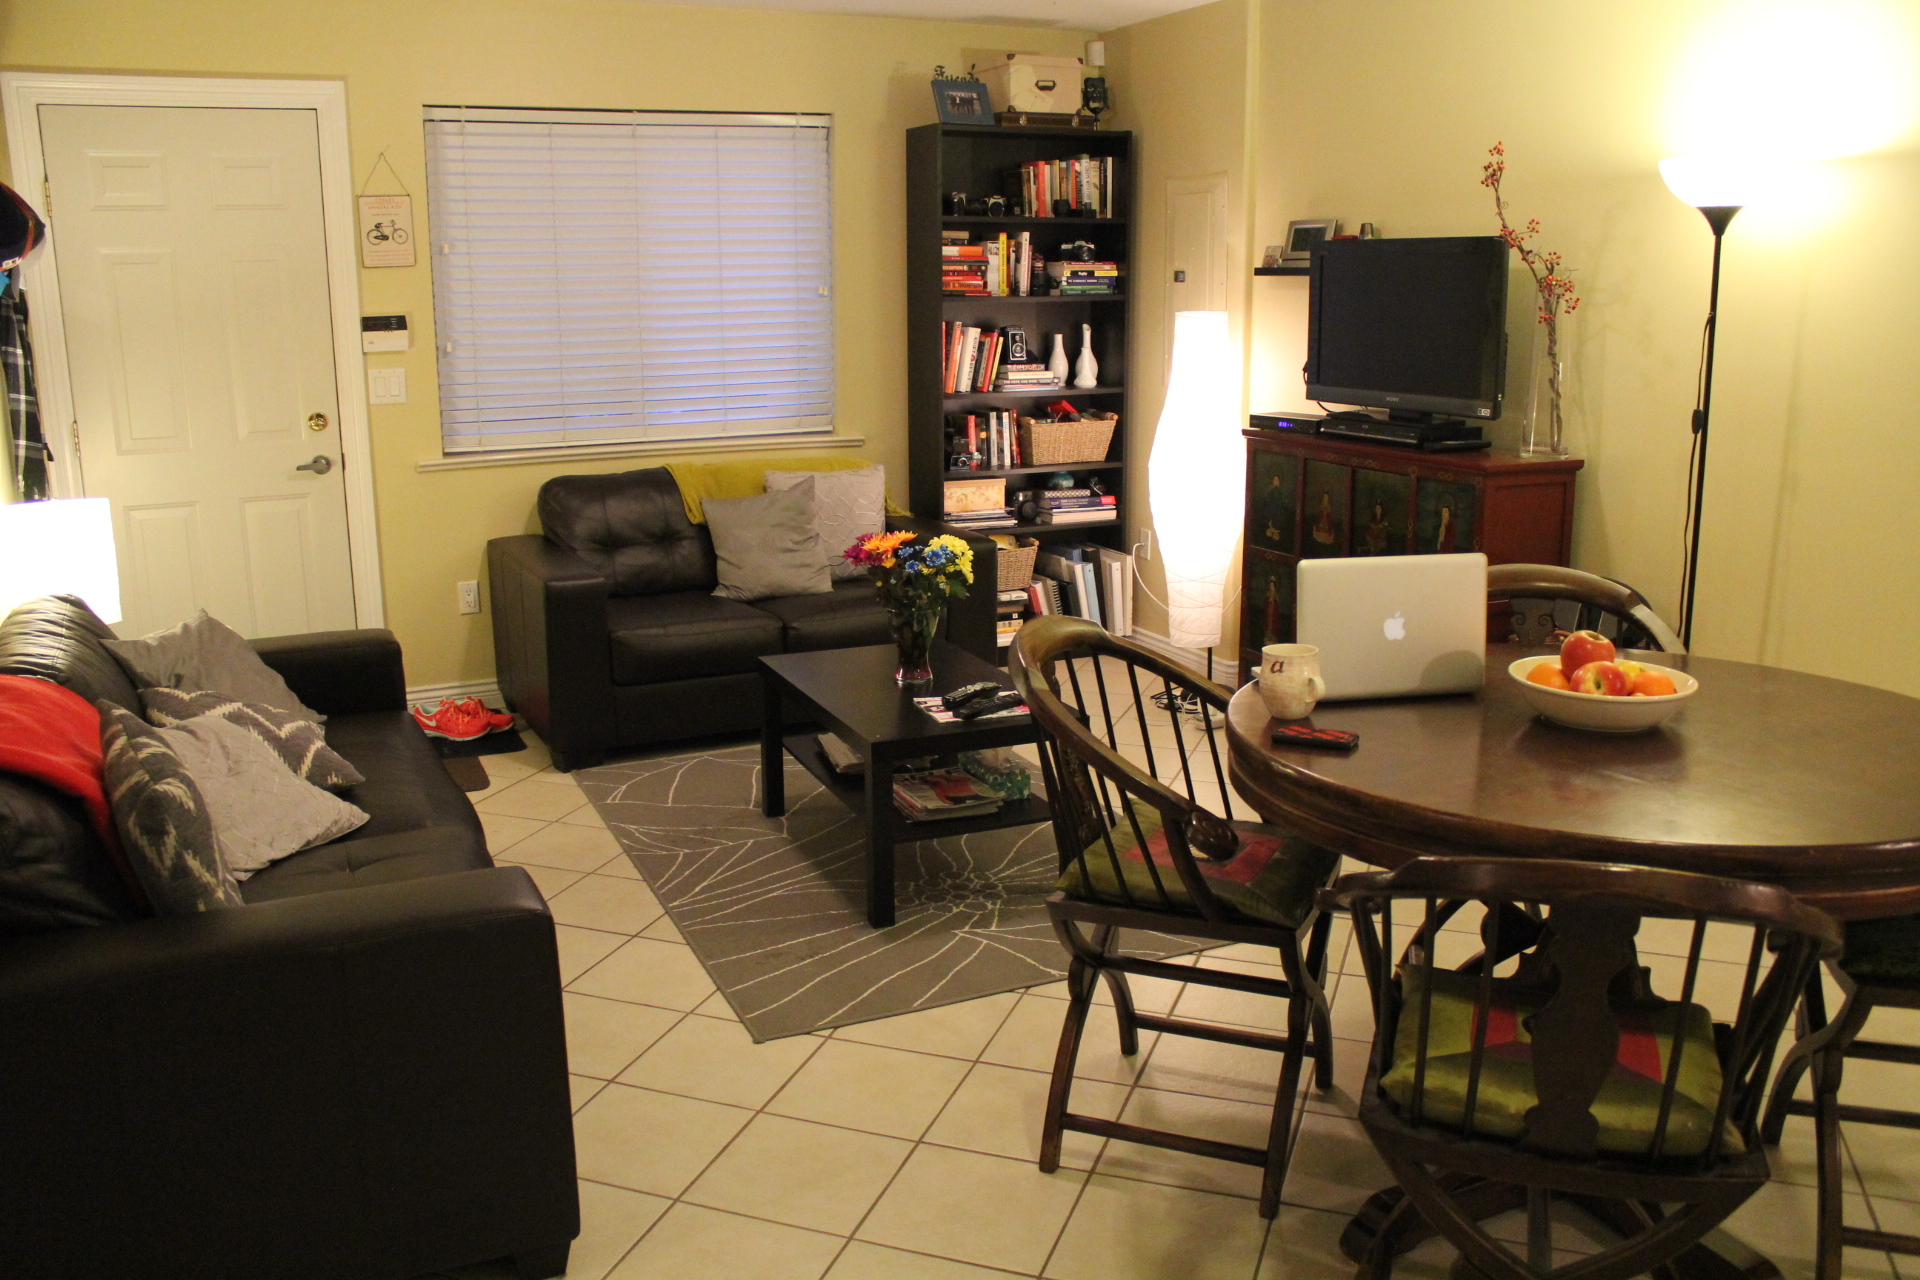 The Pros And Cons Of Living In A Basement Apartment Ashly Monkey